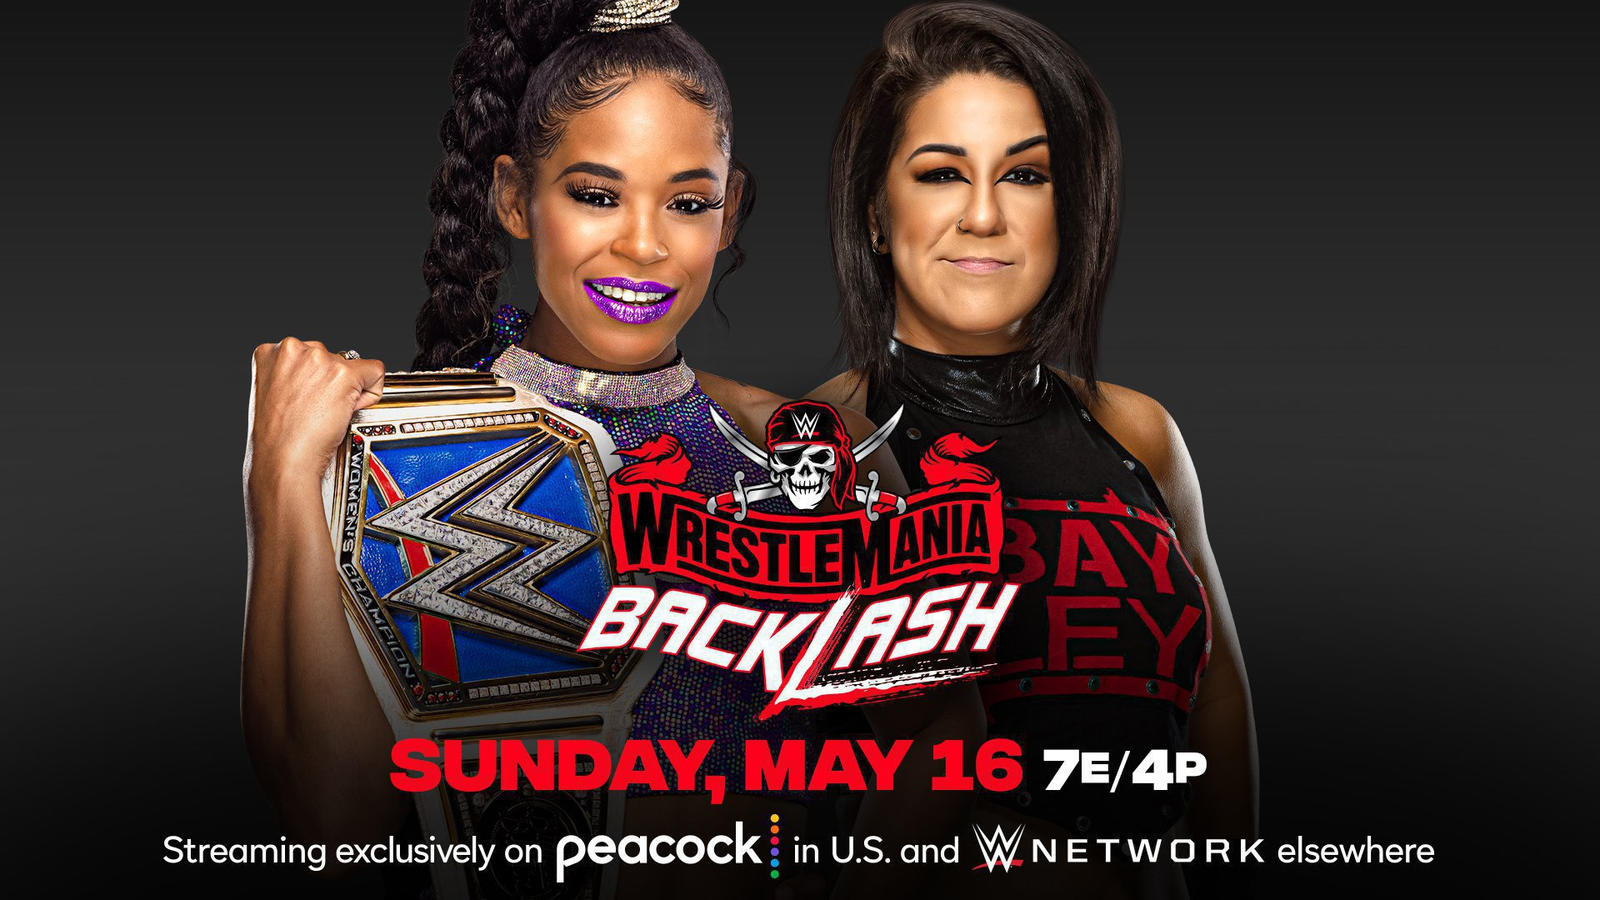 Bianca Belair vs Bayley Set For WrestleMania Backlash